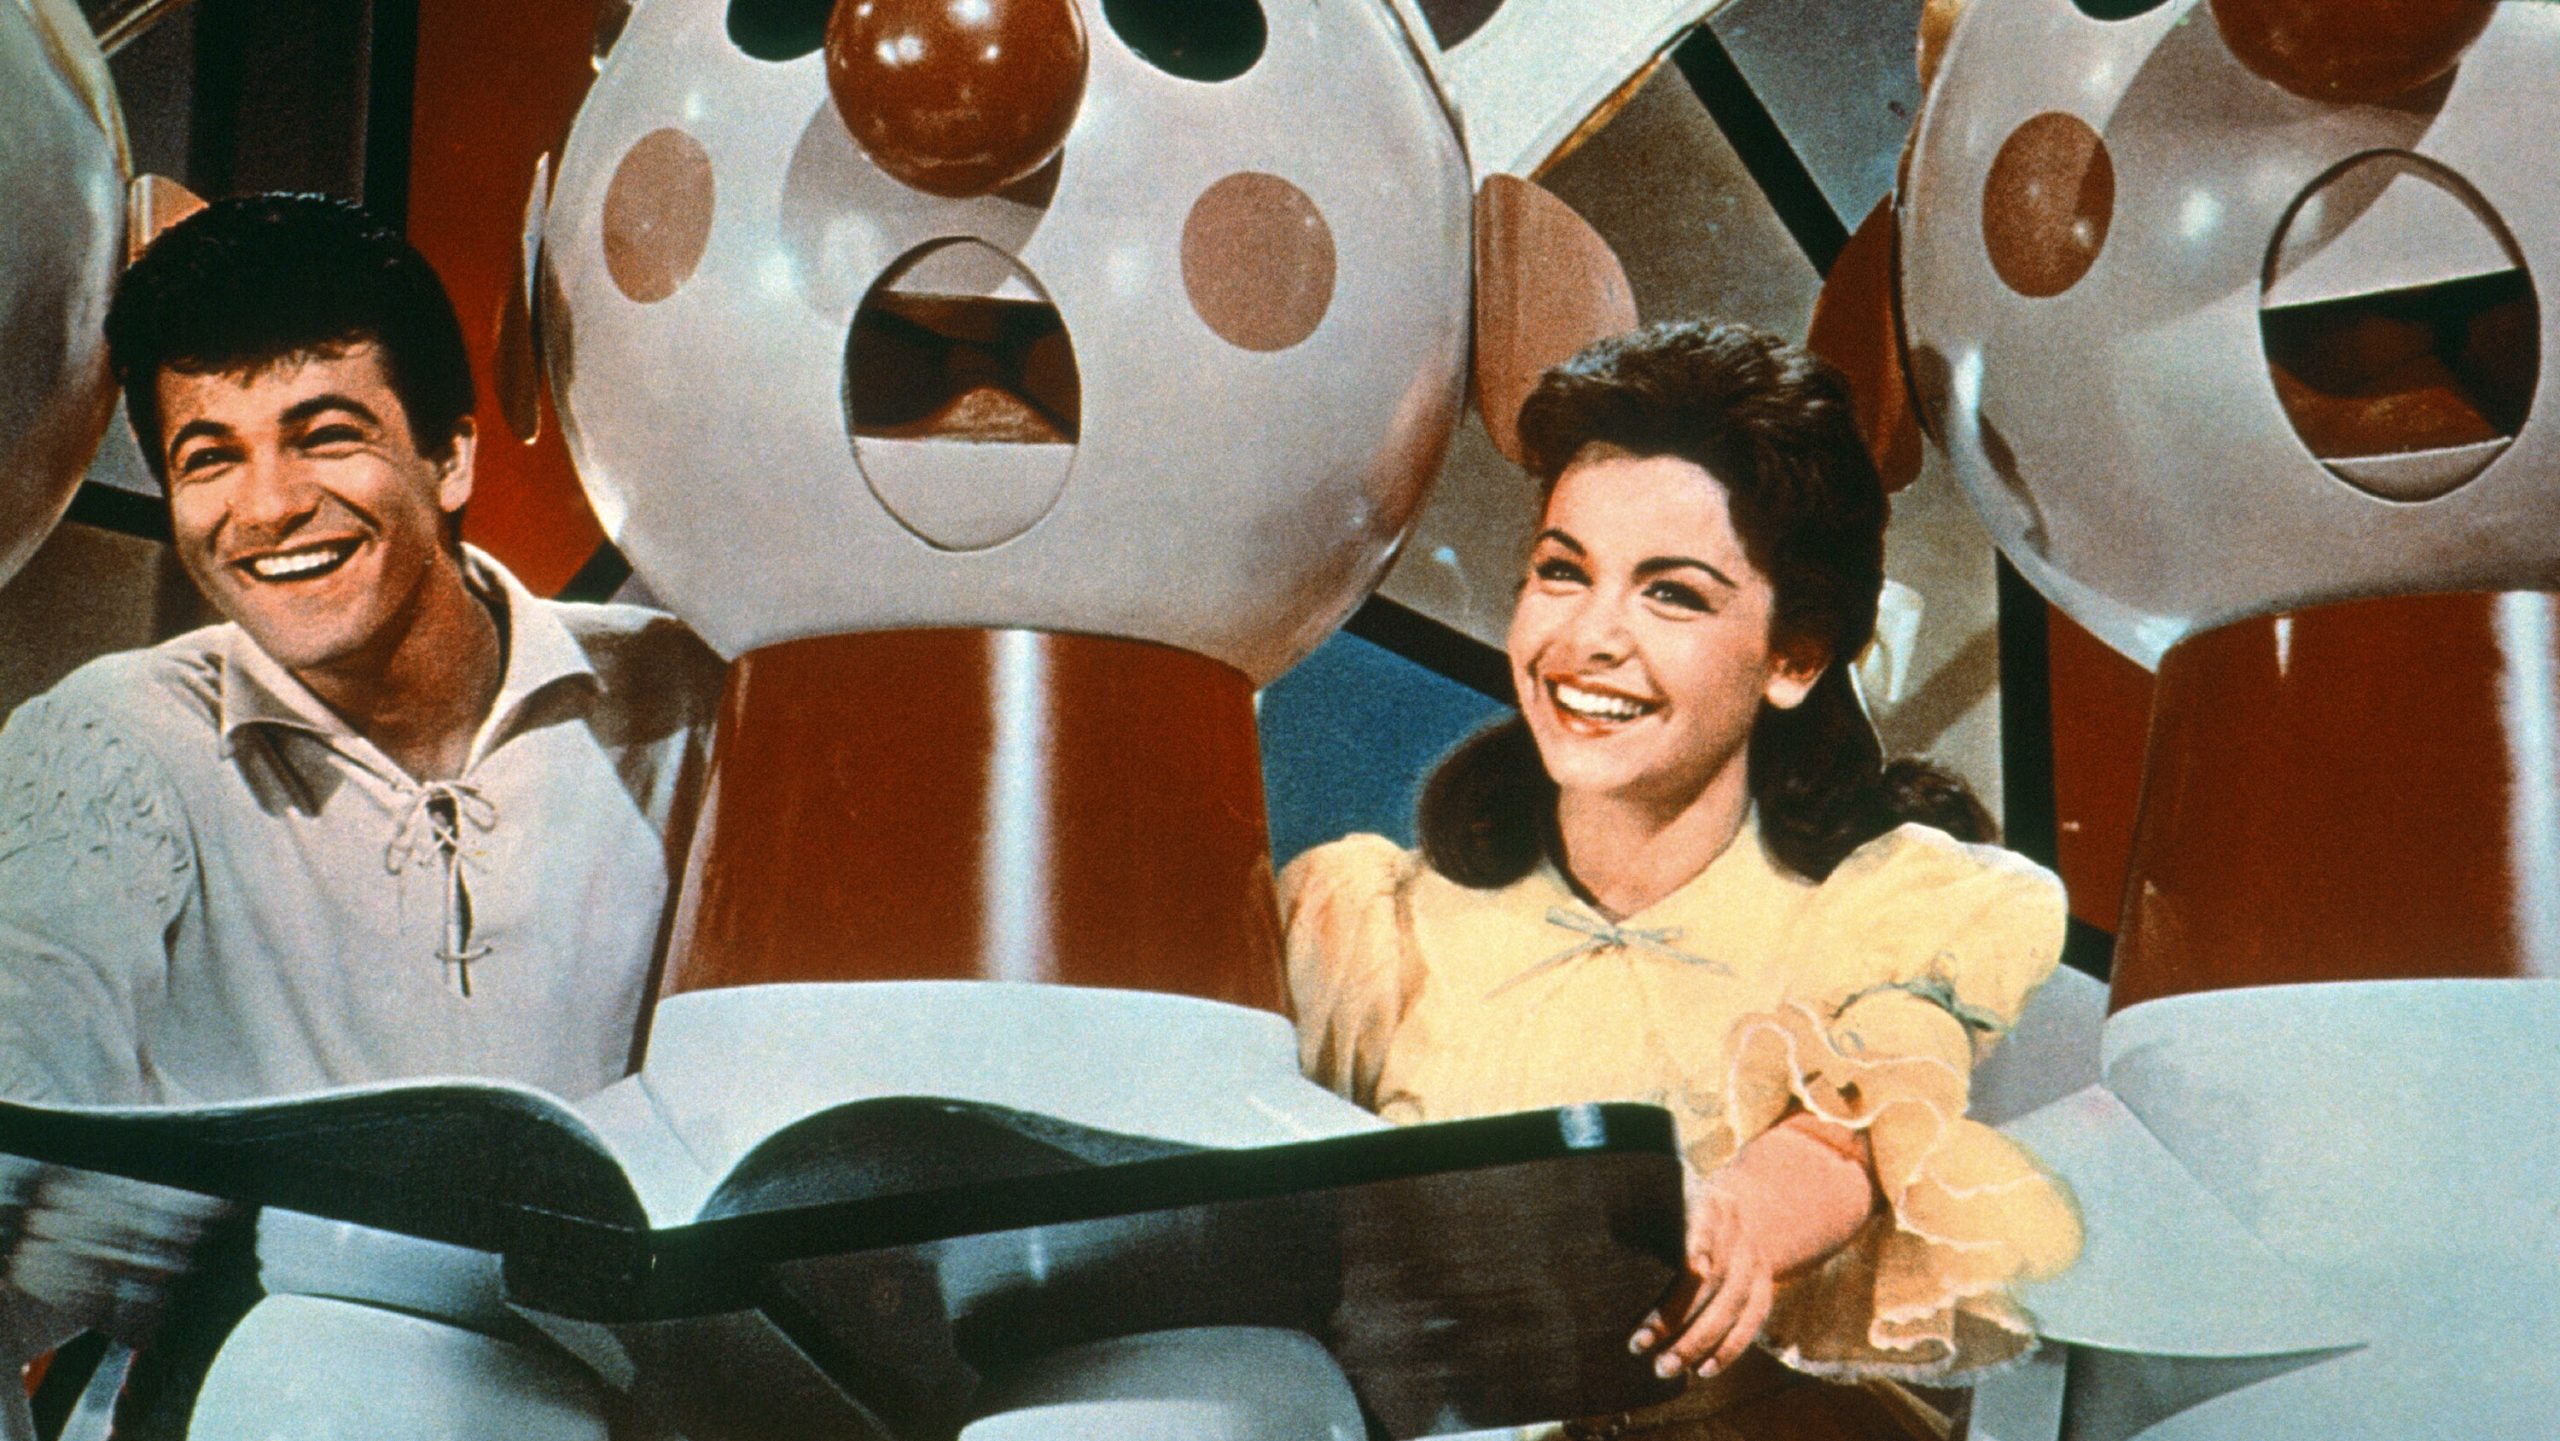 annette-funicello-babes-in-toyland